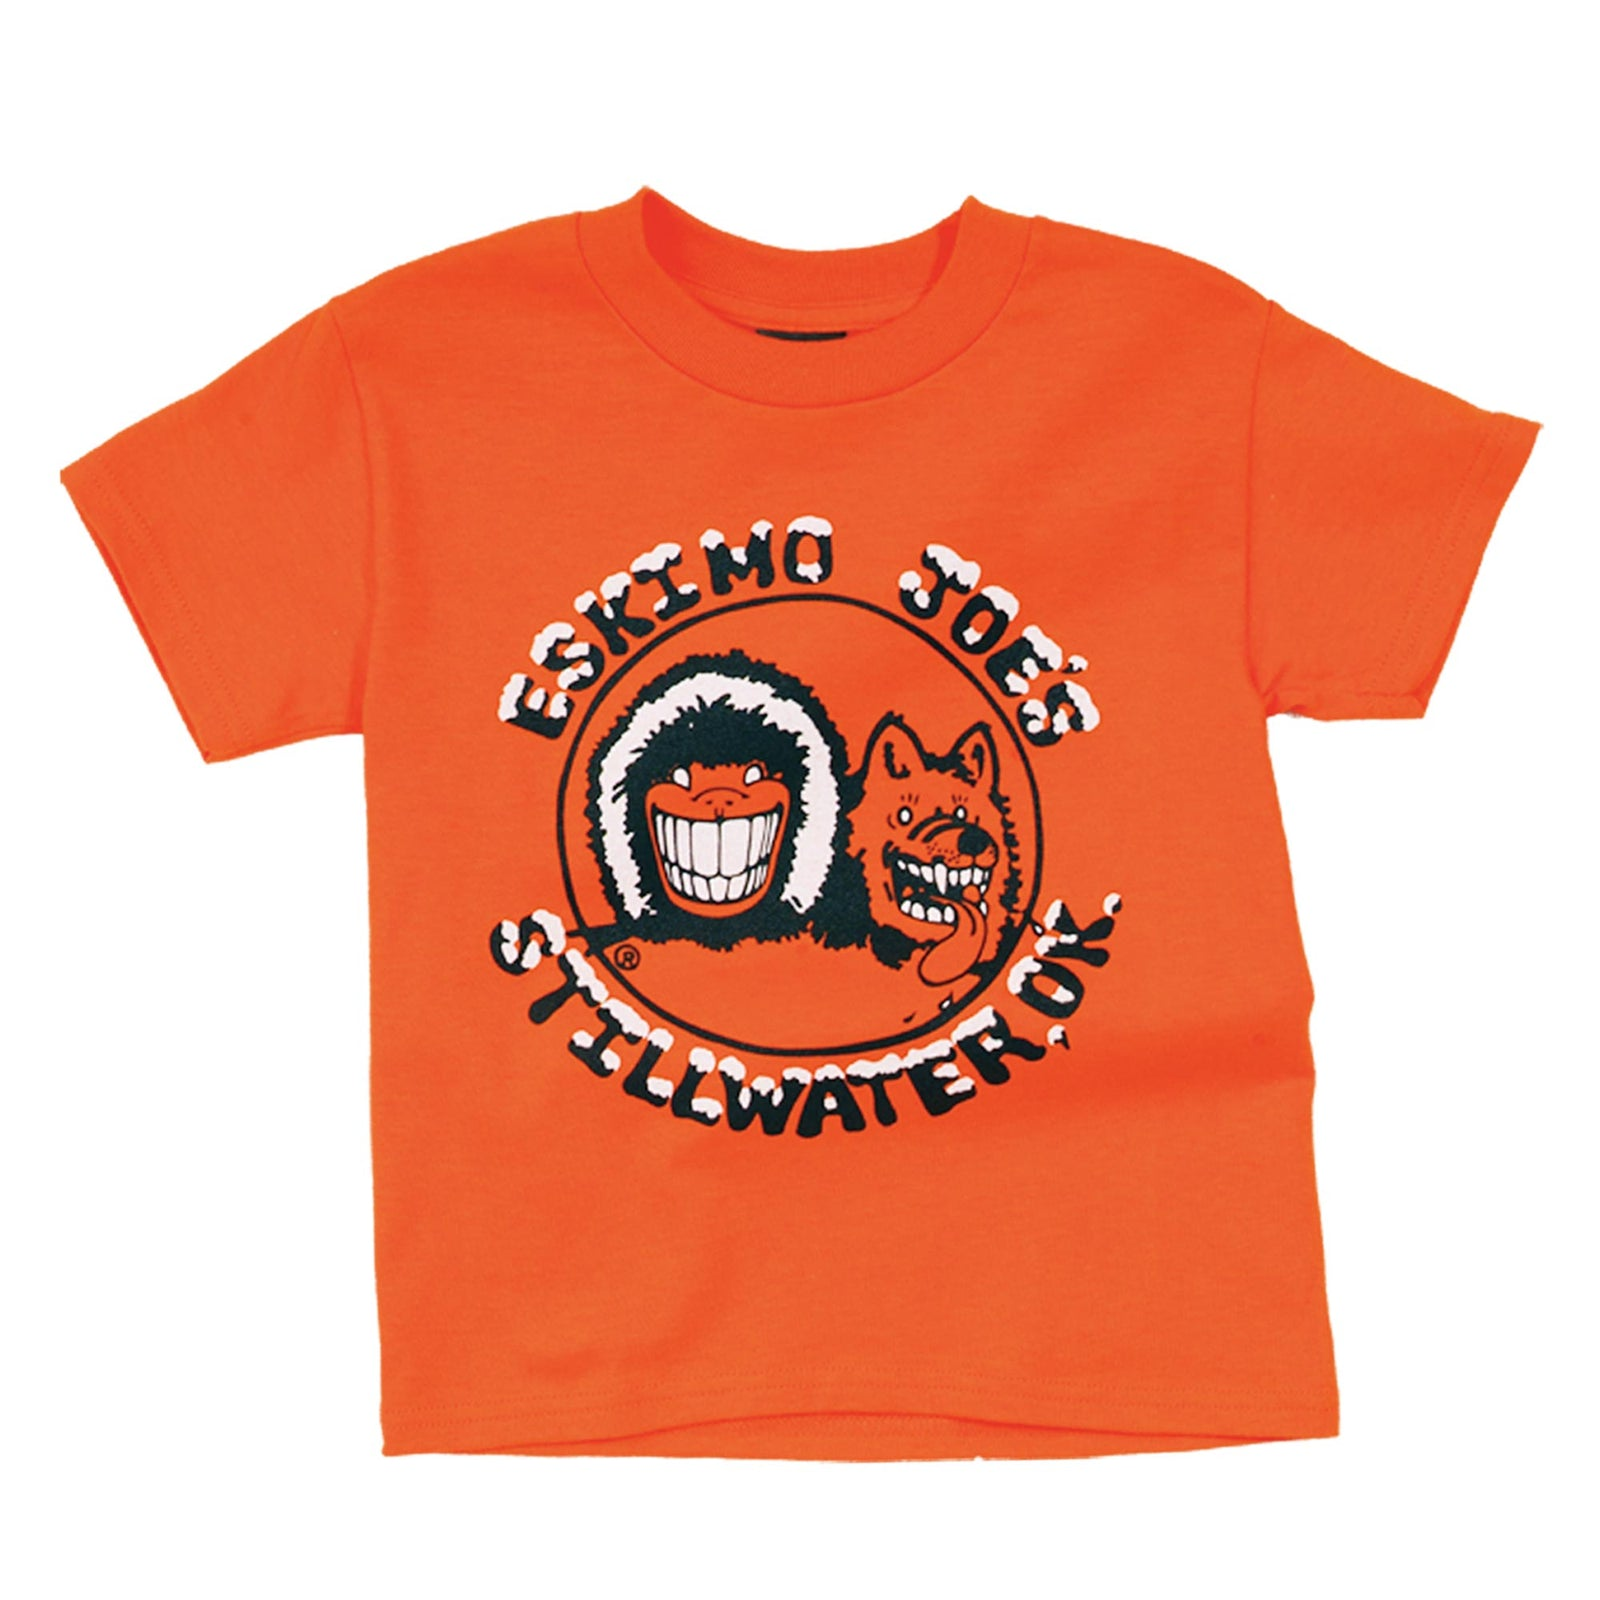 YOUTH TEES - YT - Eskimo Joe's Clothes